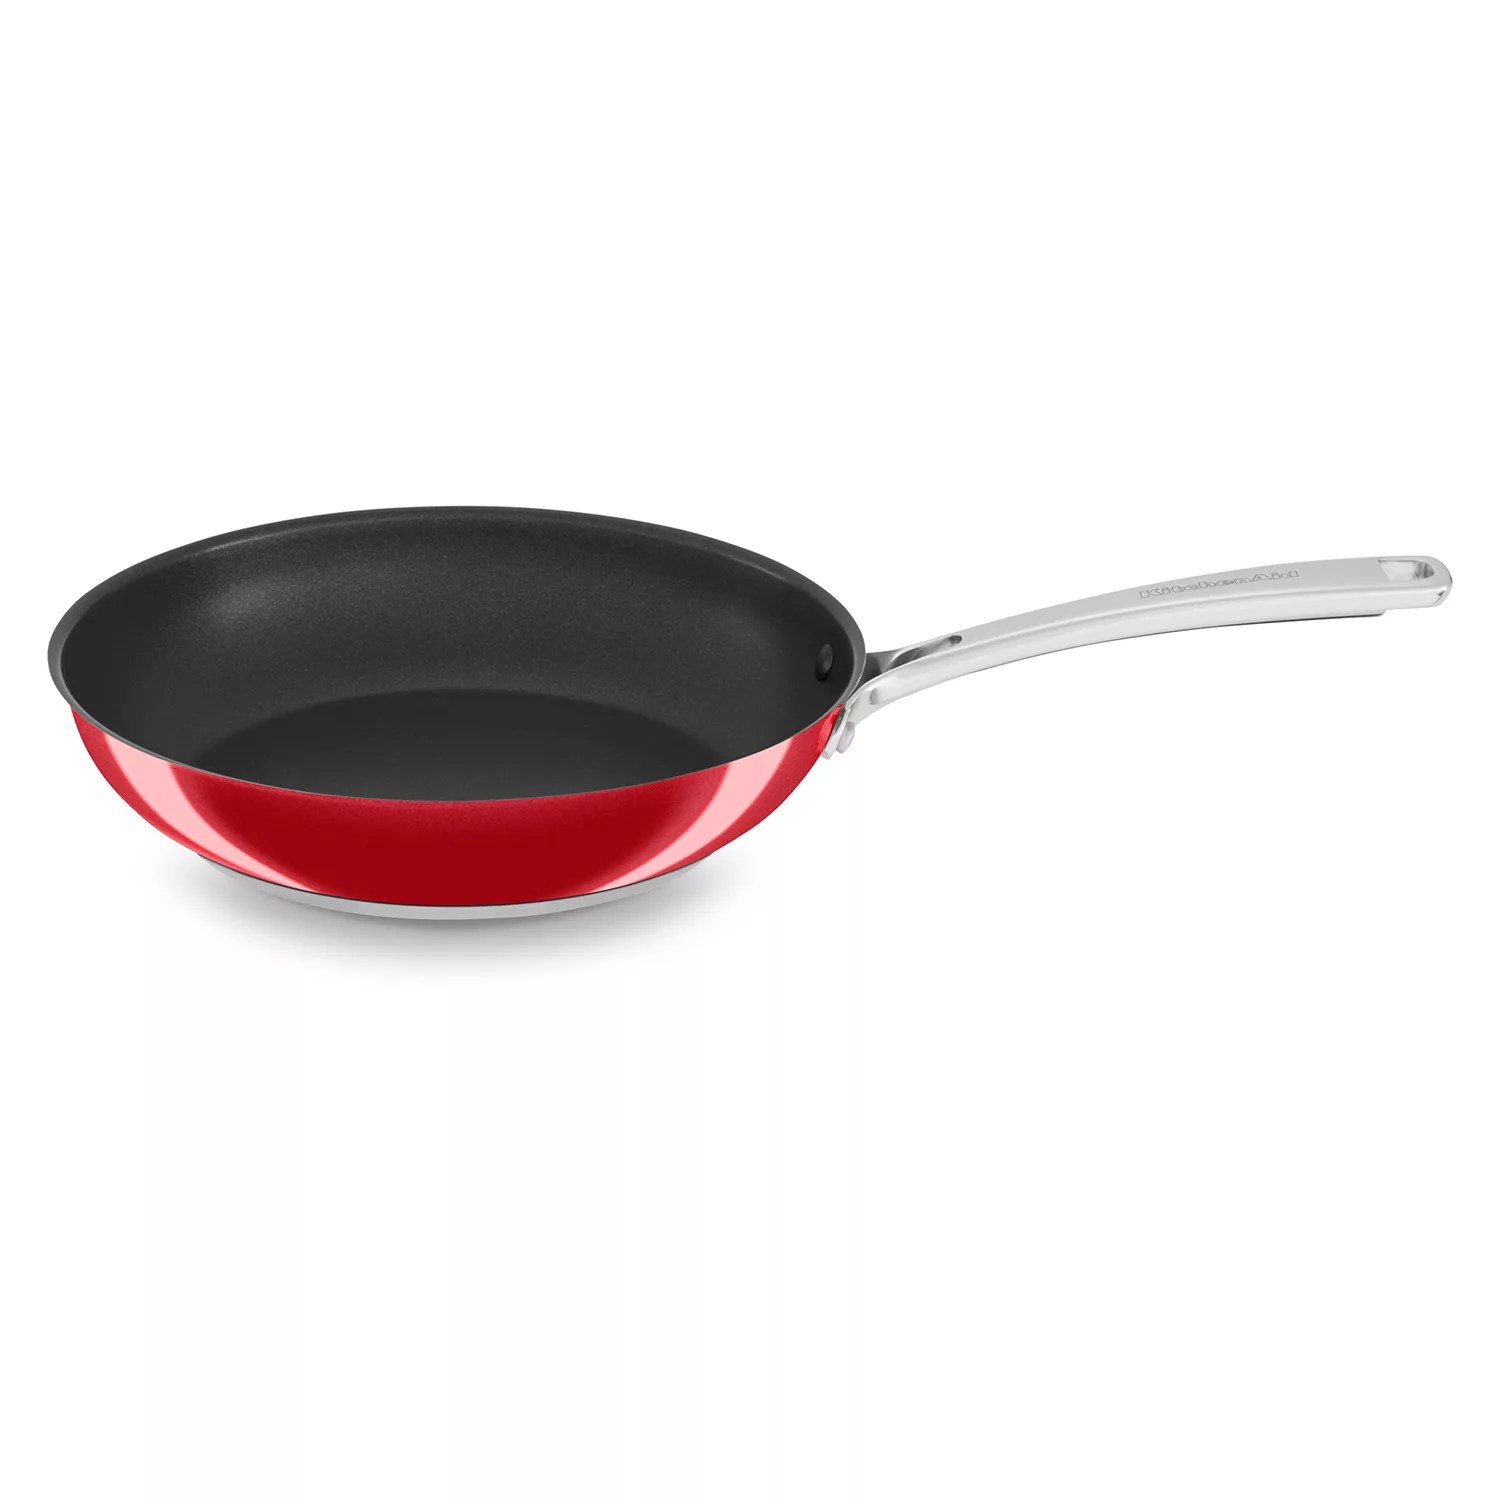 kitchen aid pans single basin sink kitchenaid skillets frying pots cookware bakeware stainless steel nonstick skillet